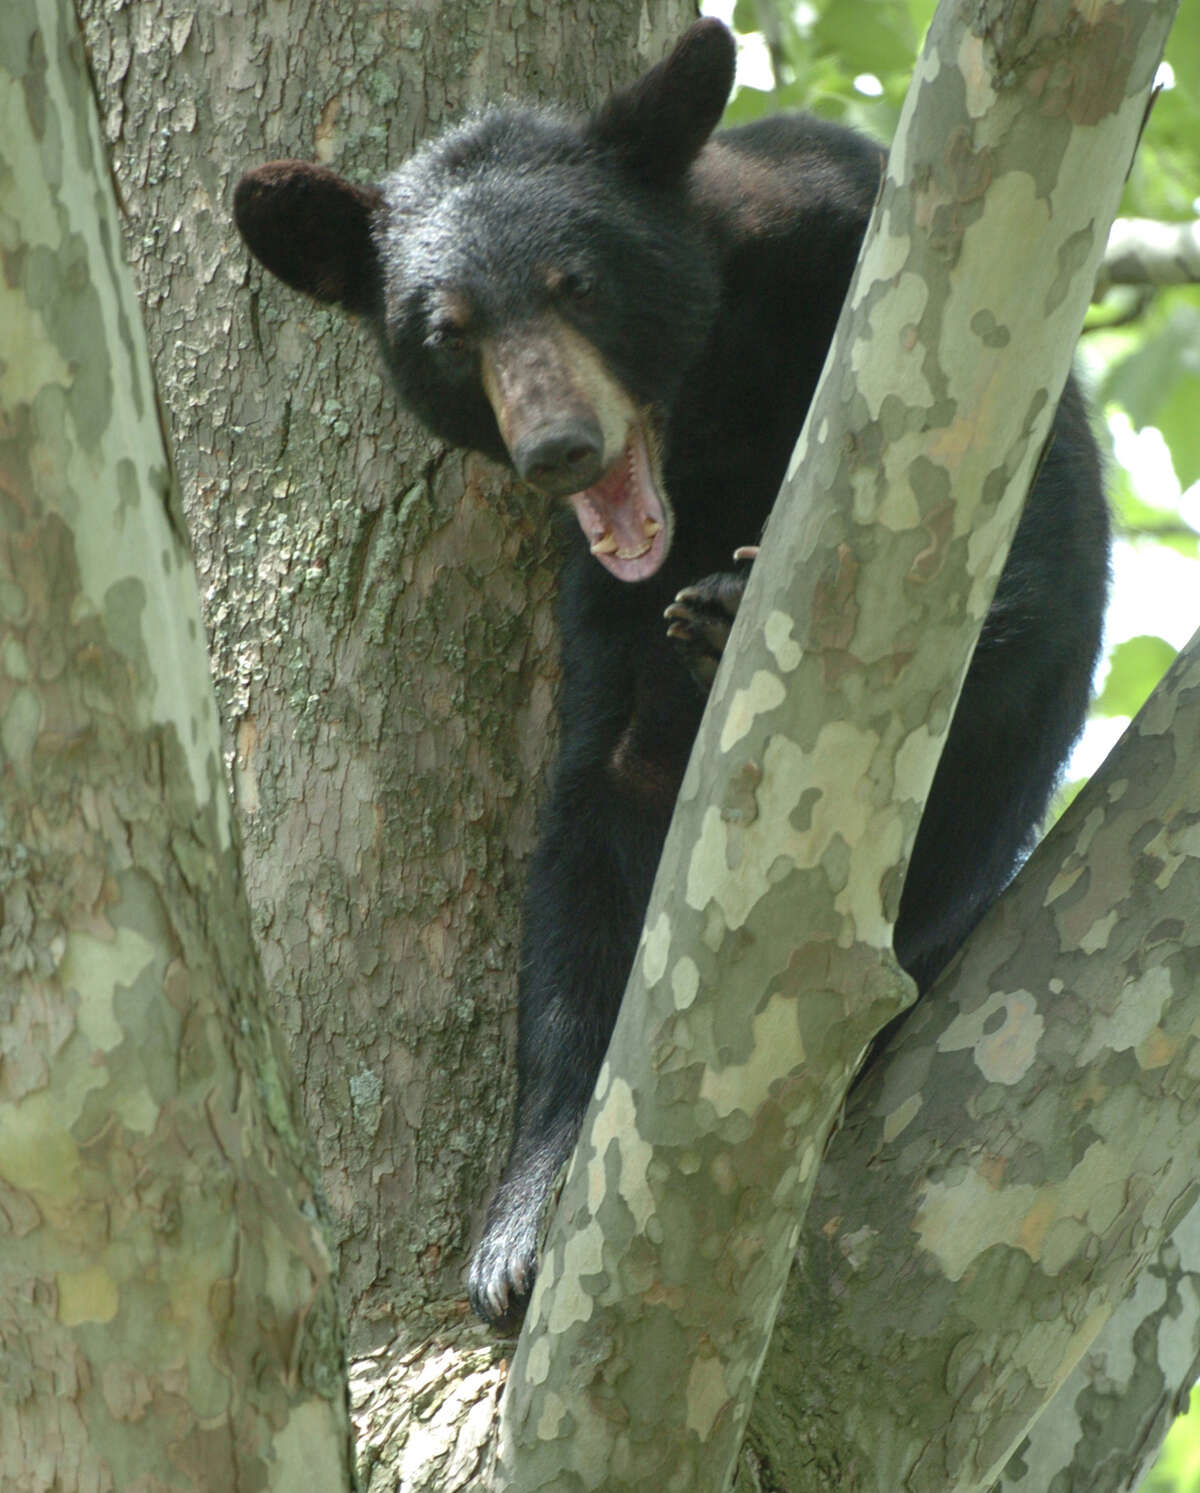 A young black bear sits in a tree in Albany in 2004. While reports of bear sightings have been flooding Facebook and other aps, experts say their numbers aren't increasing, rather people are spending more time in the bears' environment and noticing them more. (Times Union archive)